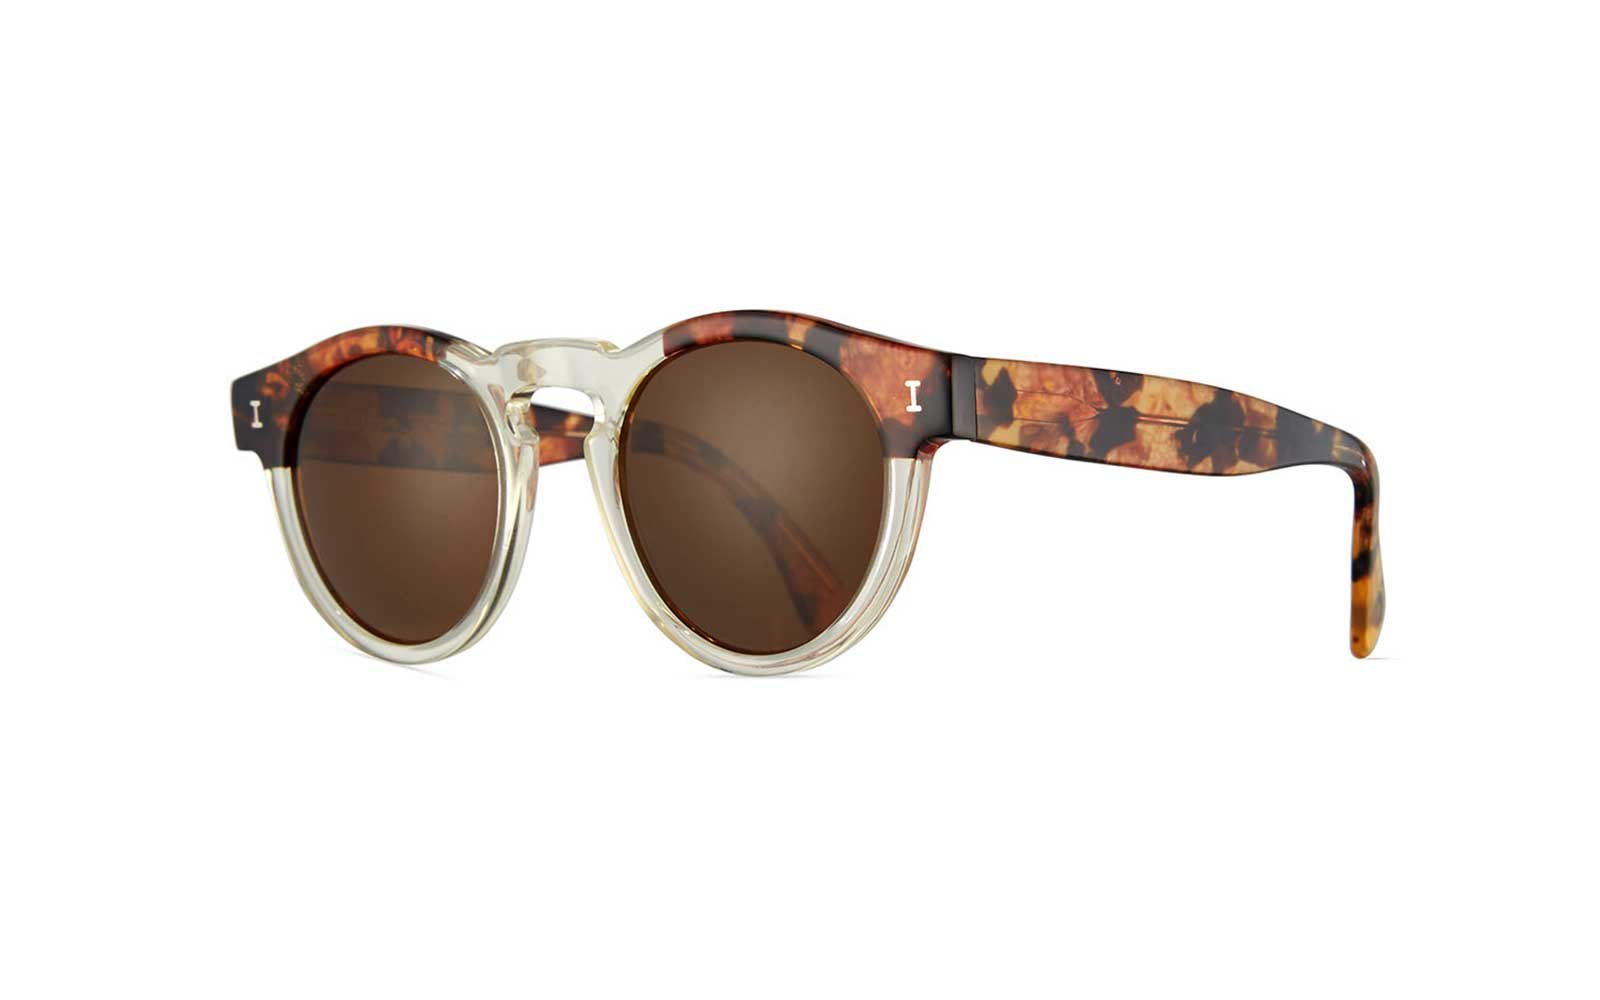 9eade1e7faa The Best Sunglasses to Travel With